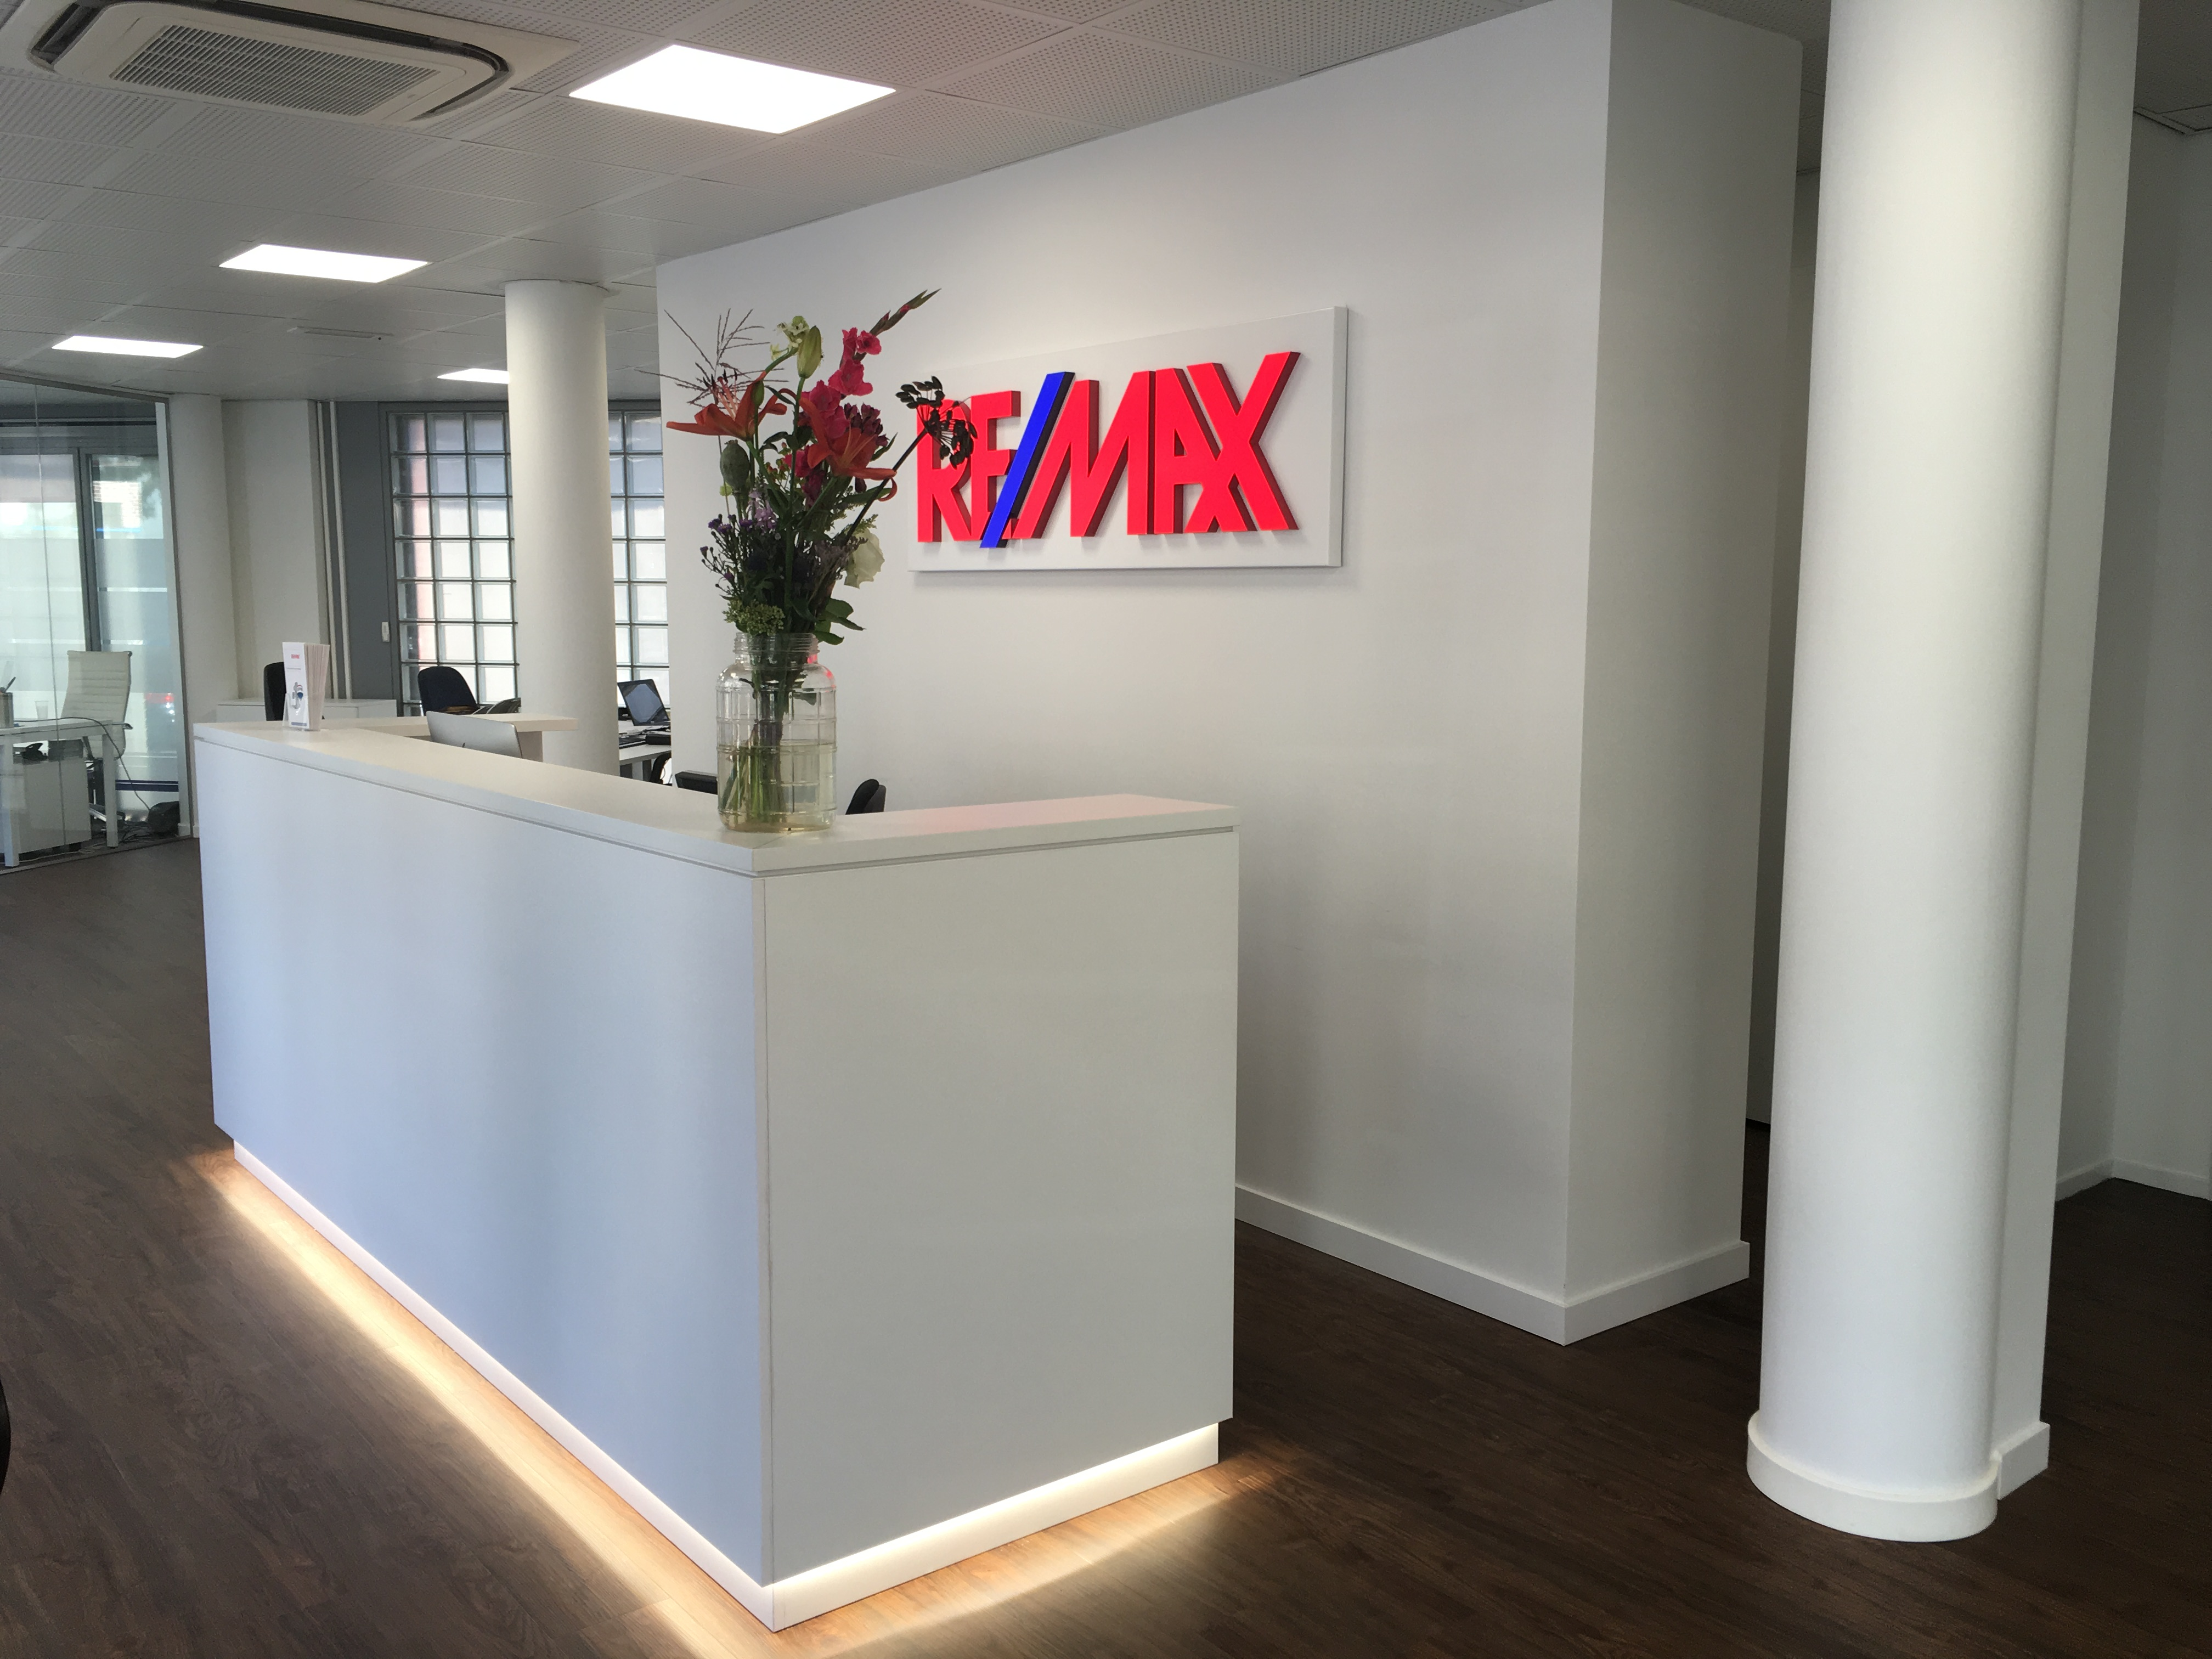 RE/MAX officedesign (Leiden)